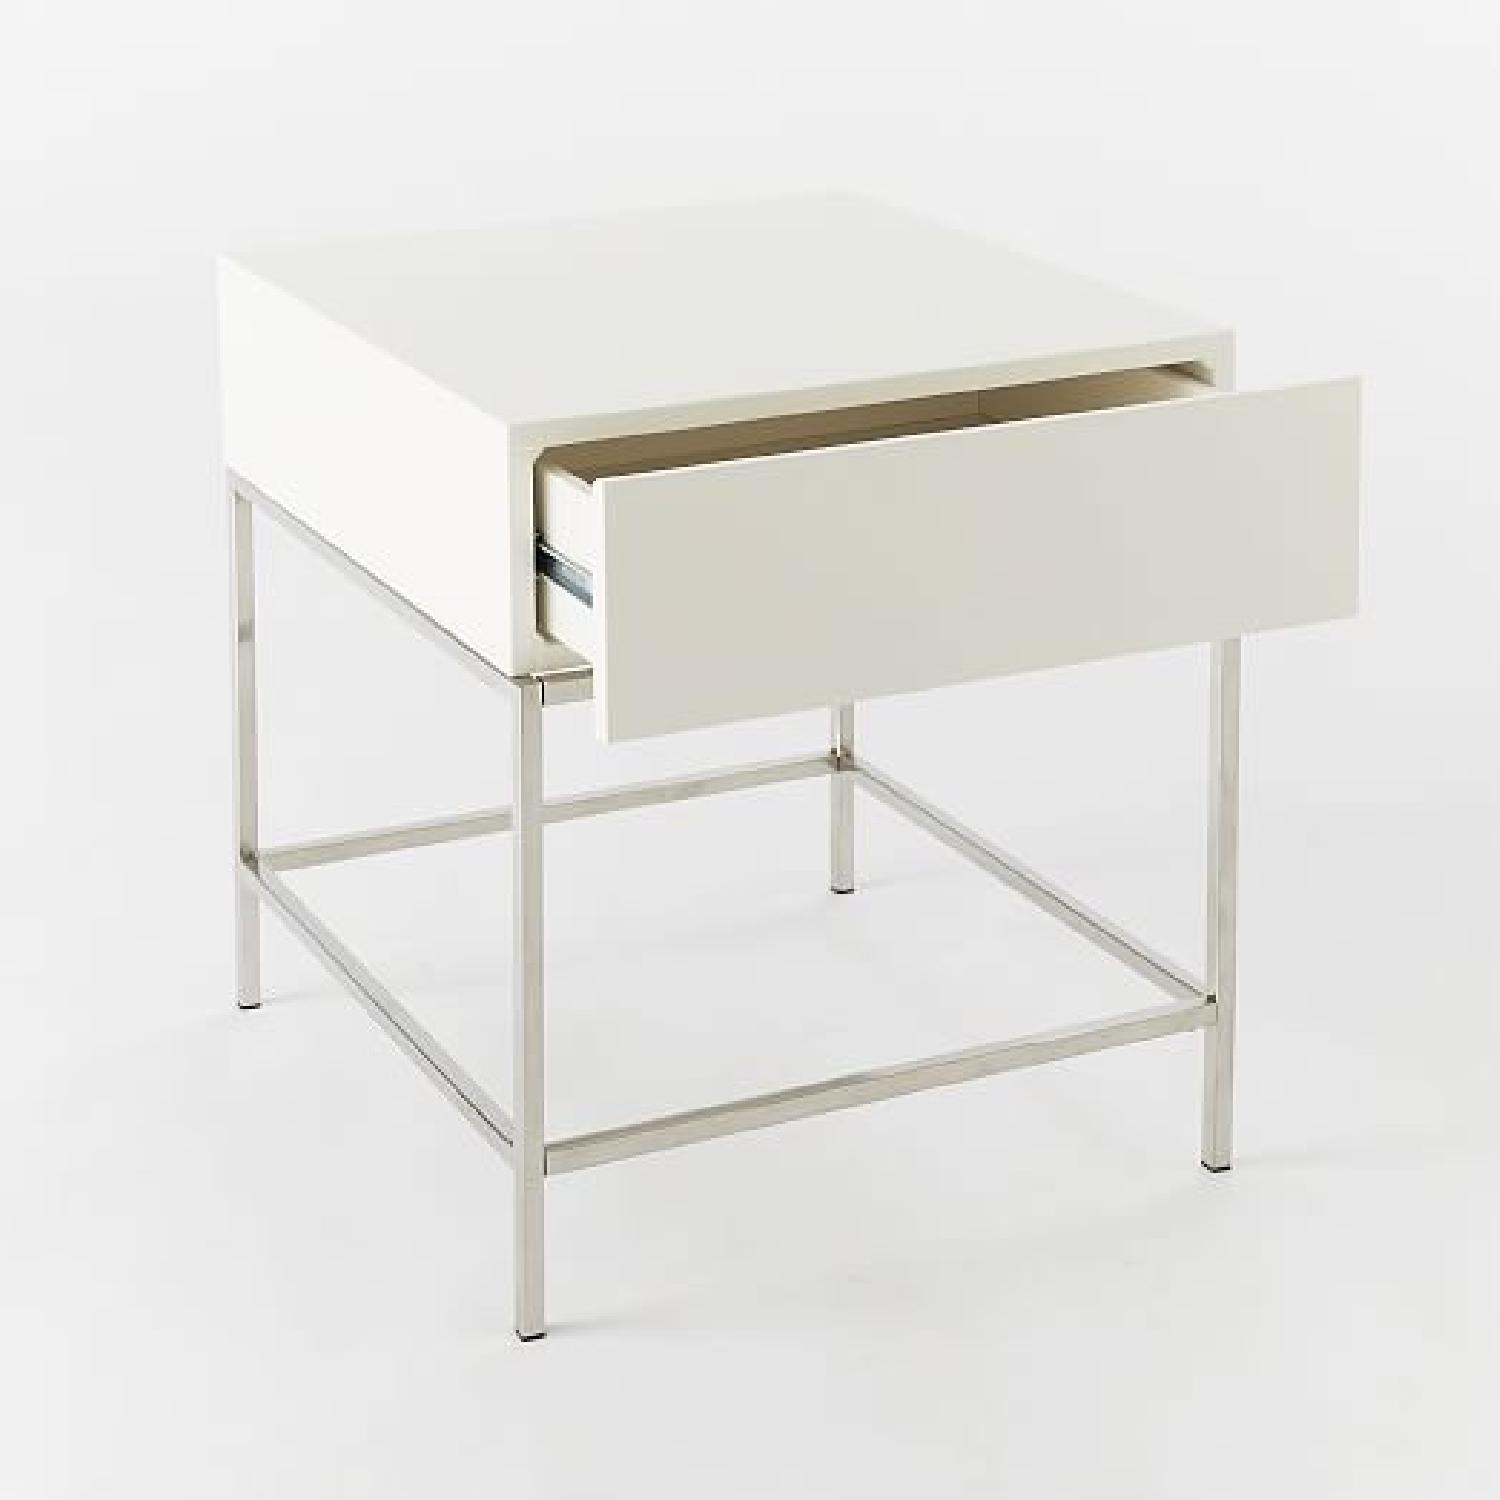 West elm white lacquer storage side table aptdeco west elm white lacquer storage side table 2 geotapseo Gallery